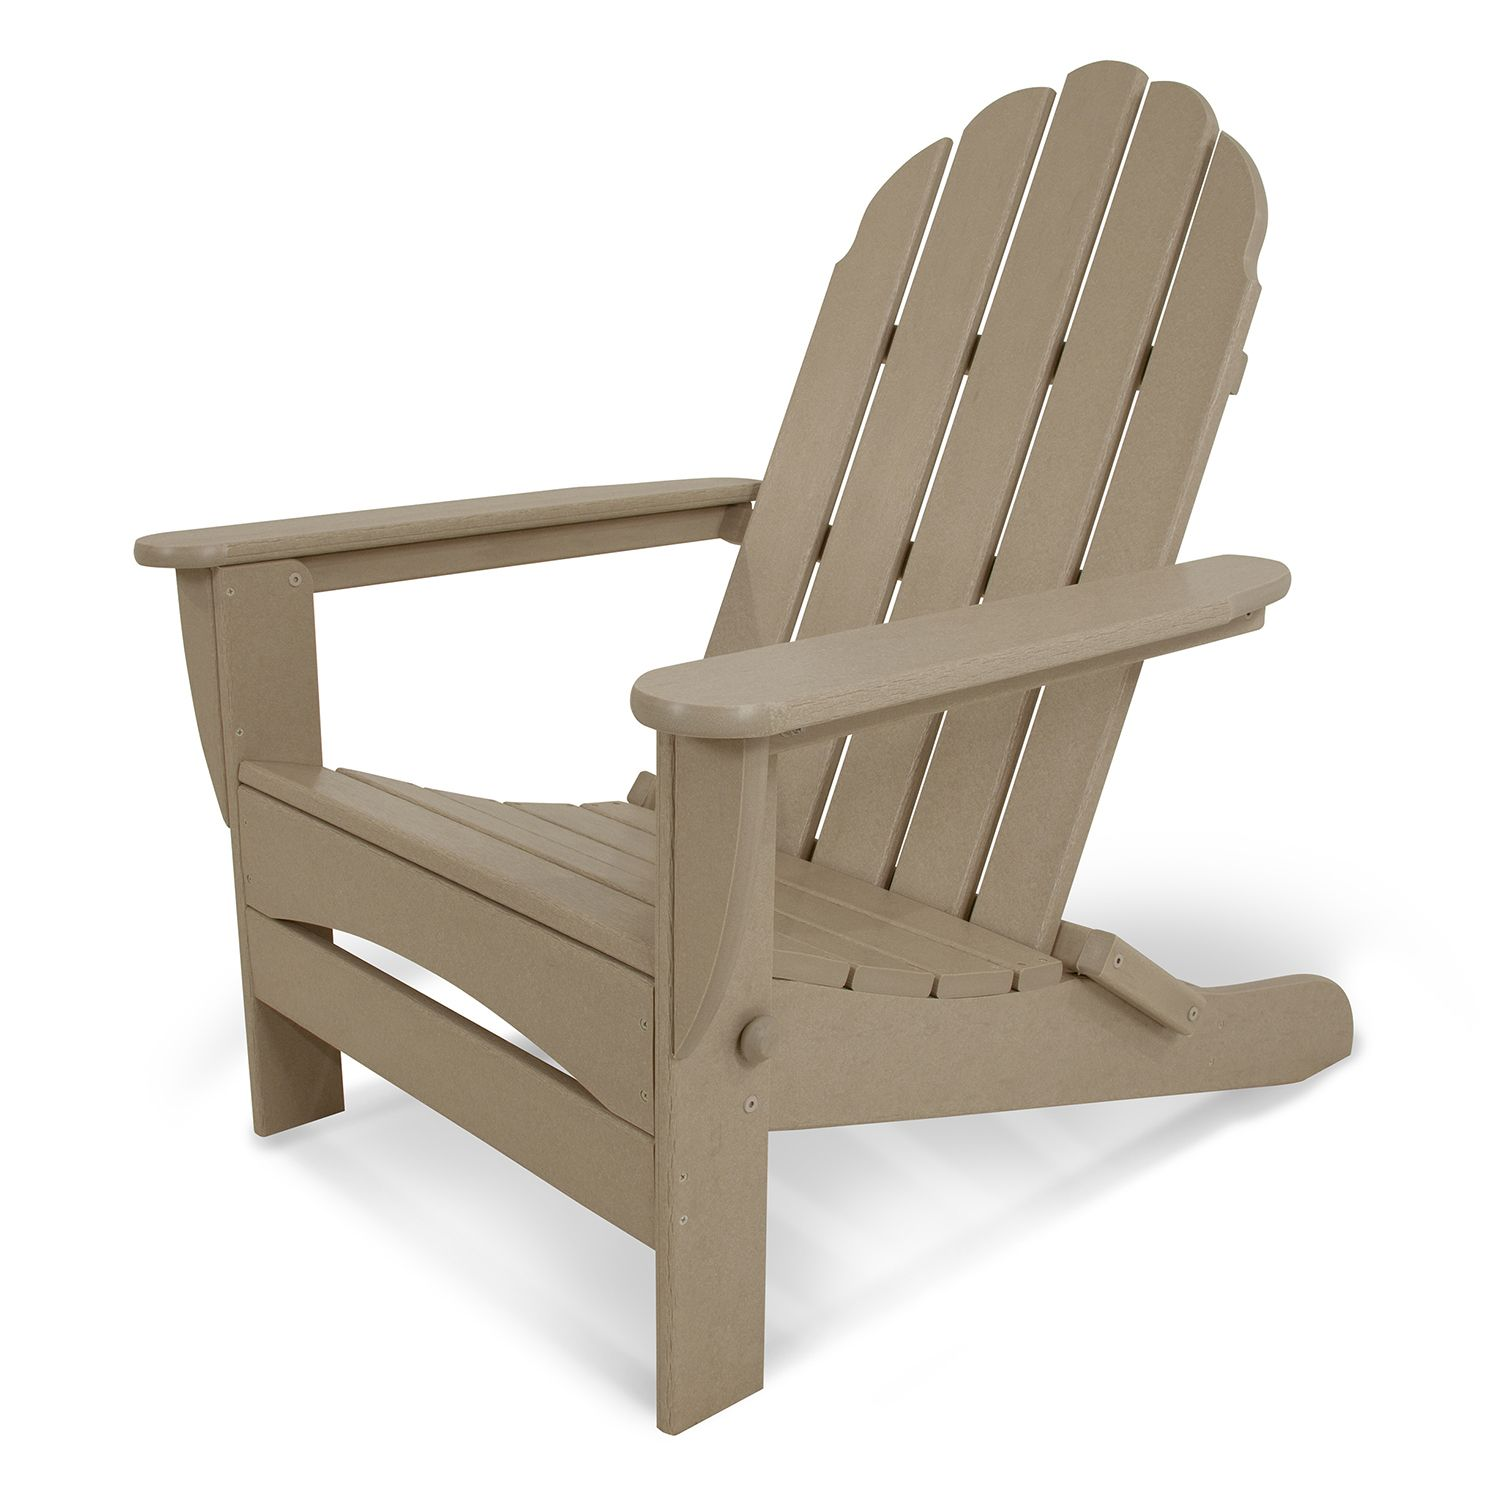 POLYWOOD® Classic Oversized Adirondack Chair   Outdoor